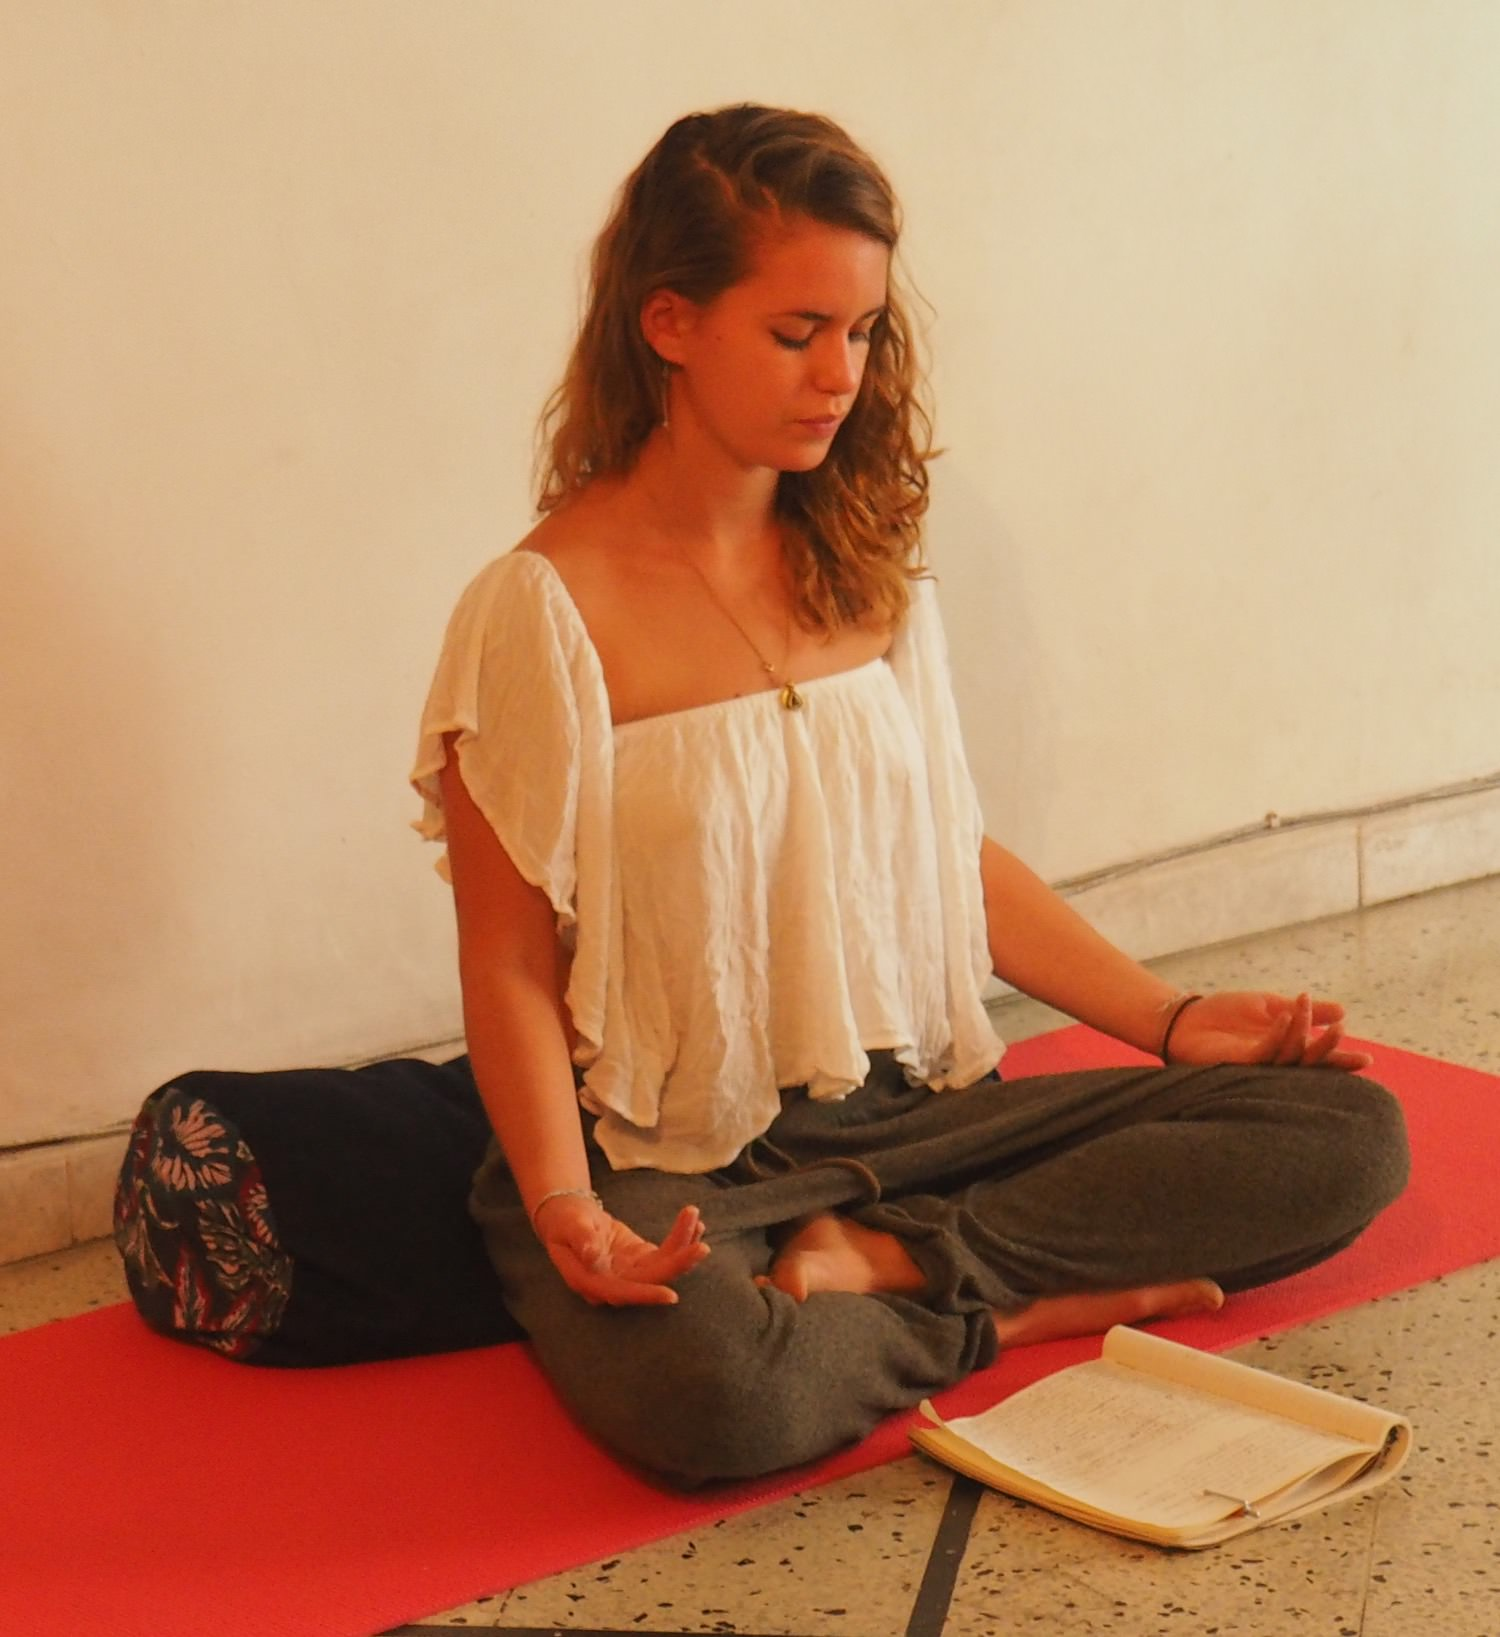 Yoga Internship Program, Medellín, Colombia, South America - teach and work in a yoga studio - dates and prices 4